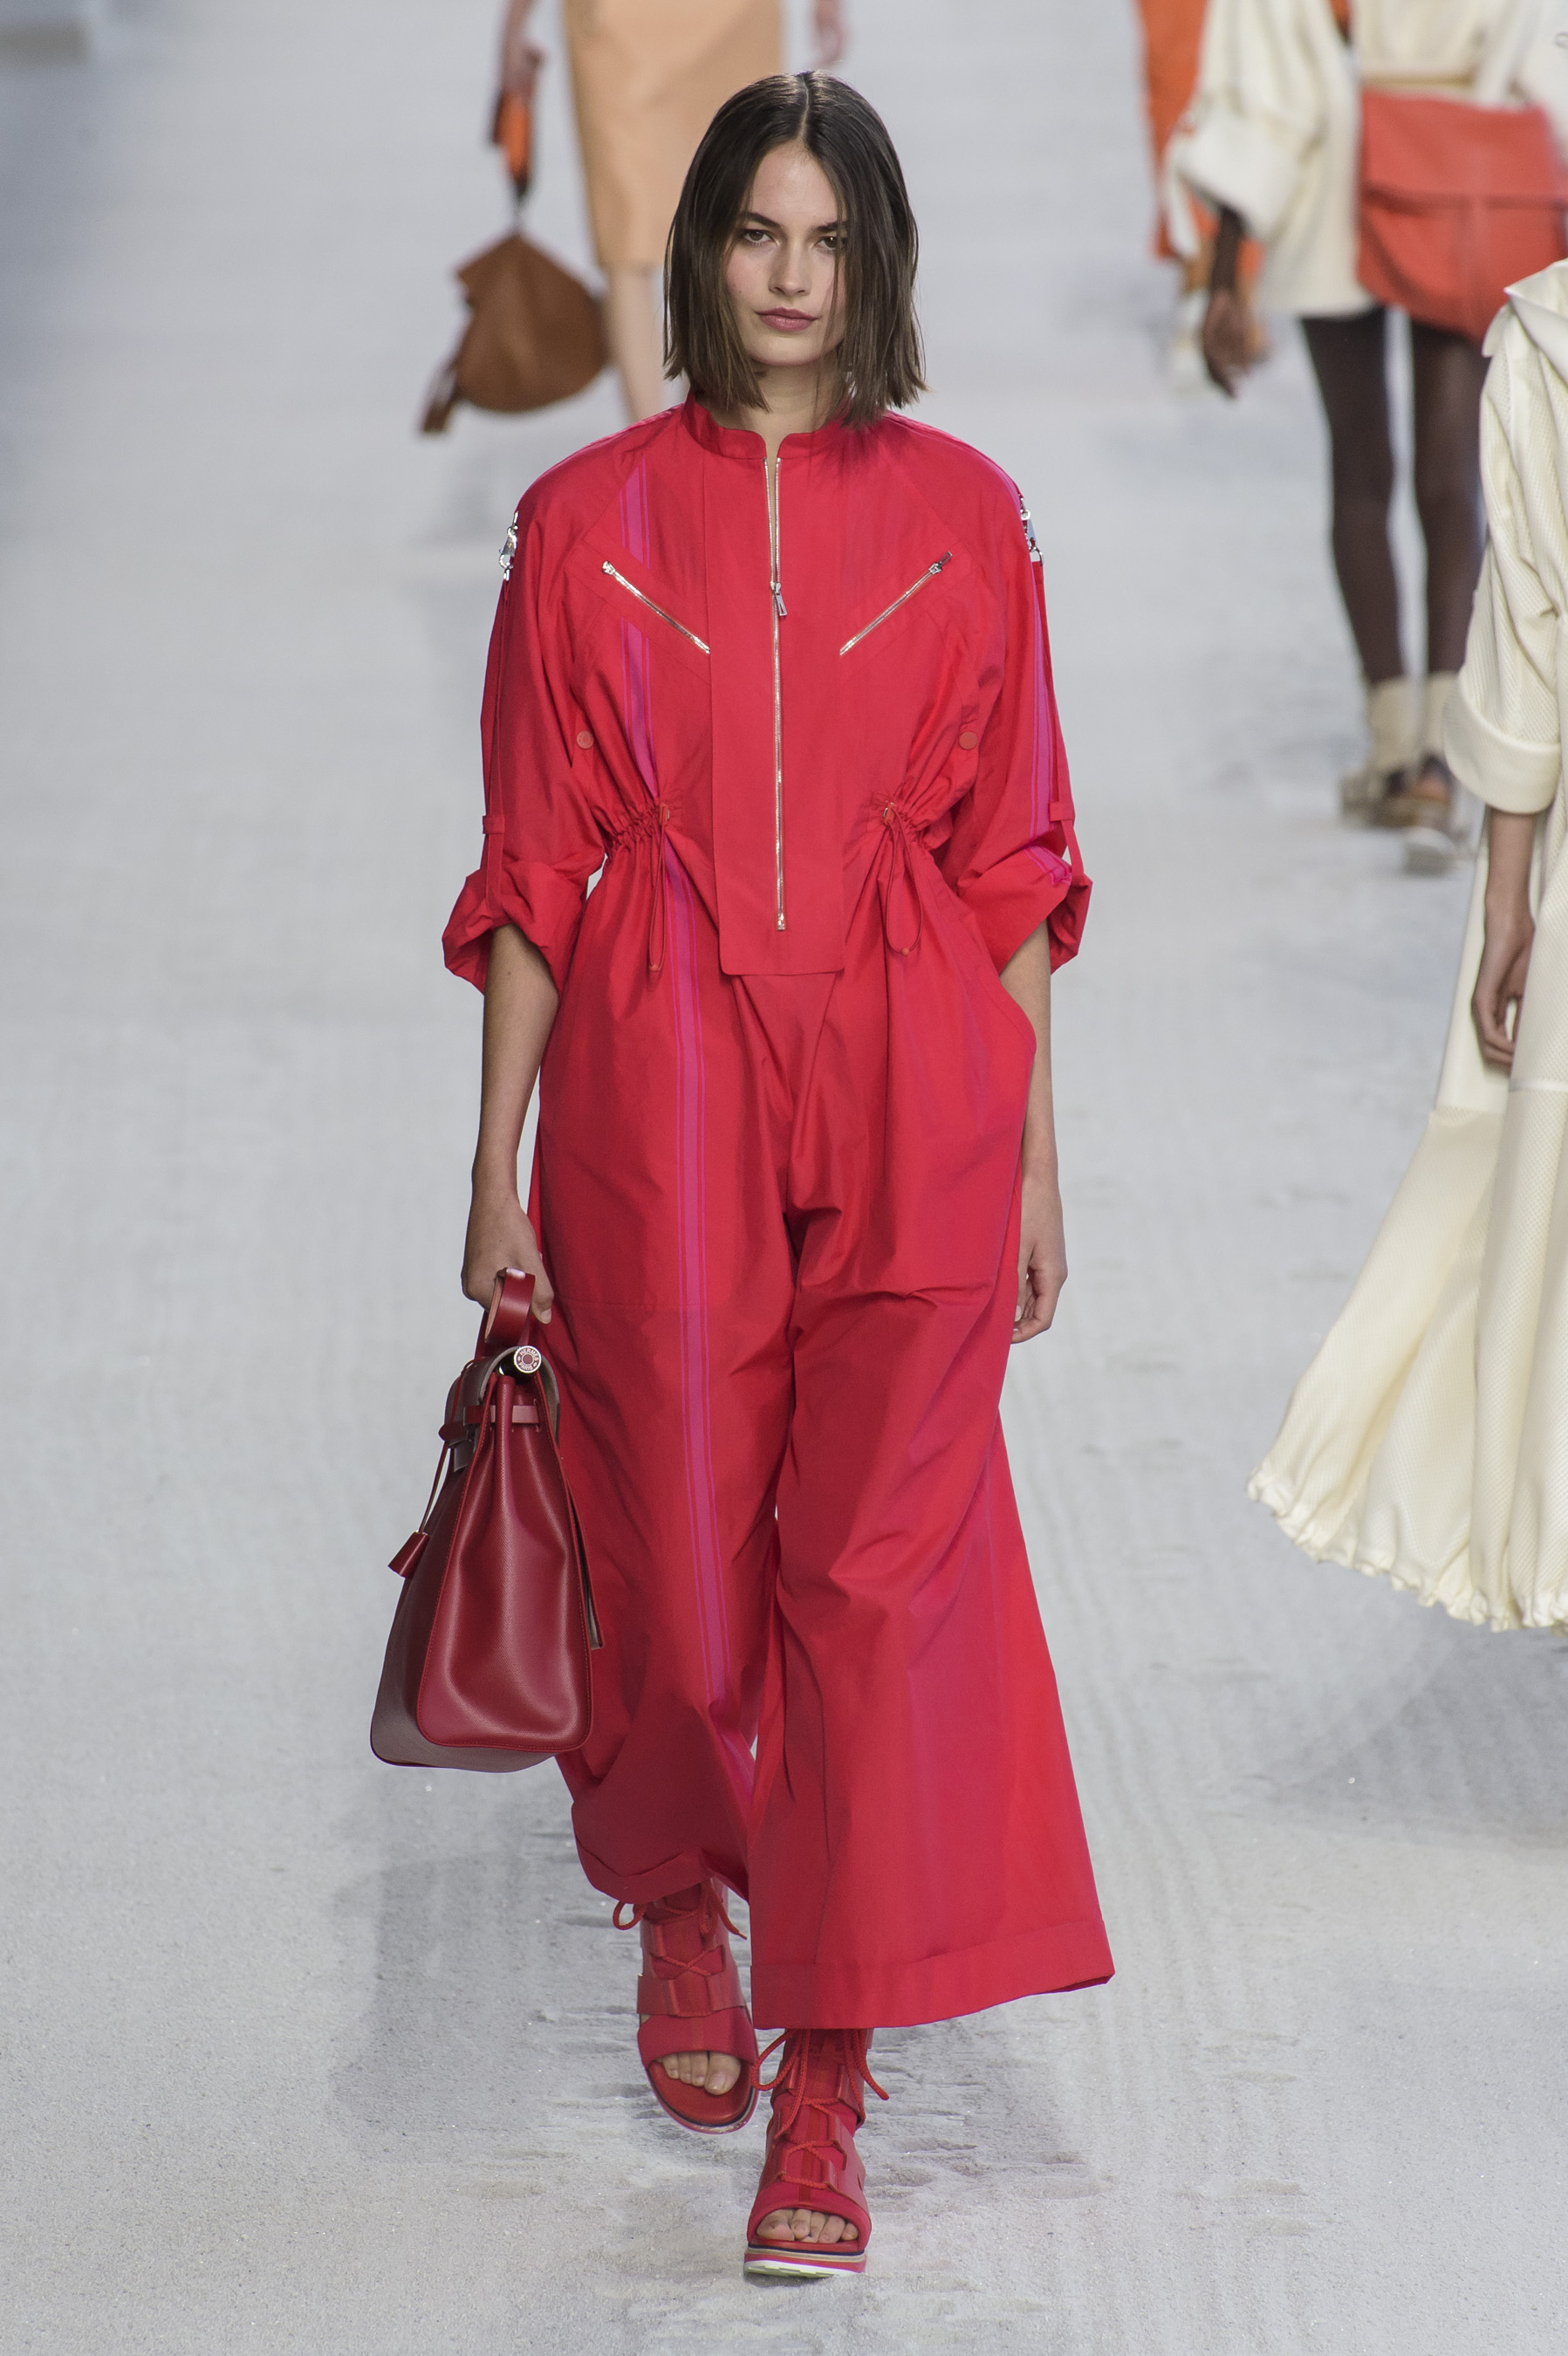 Hermes Spring 2019 Fashion Show